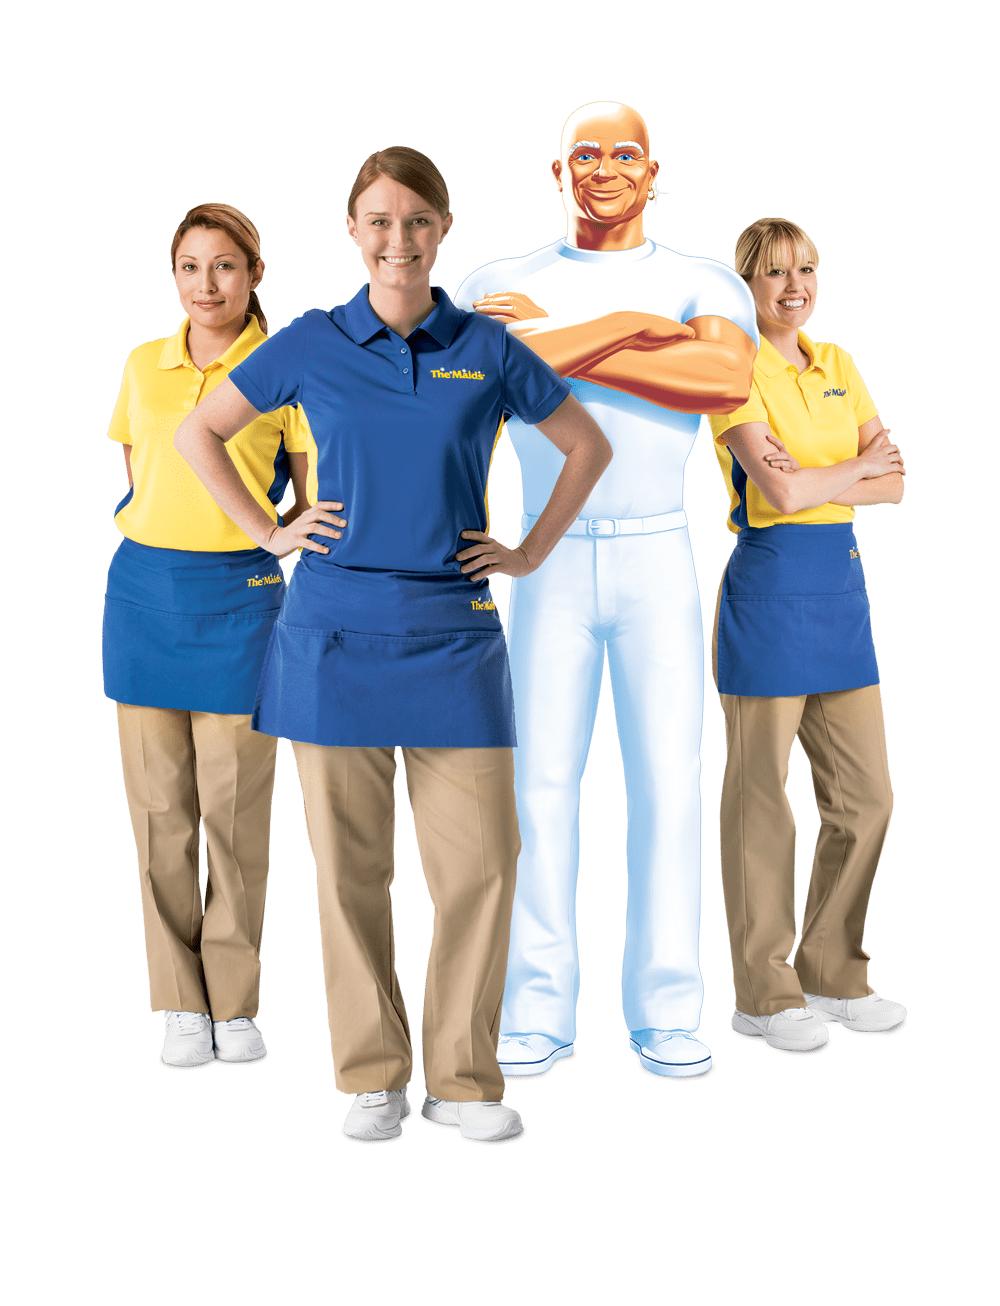 The Maids House Cleaning - The Maids in Ashburn Home Cleaning